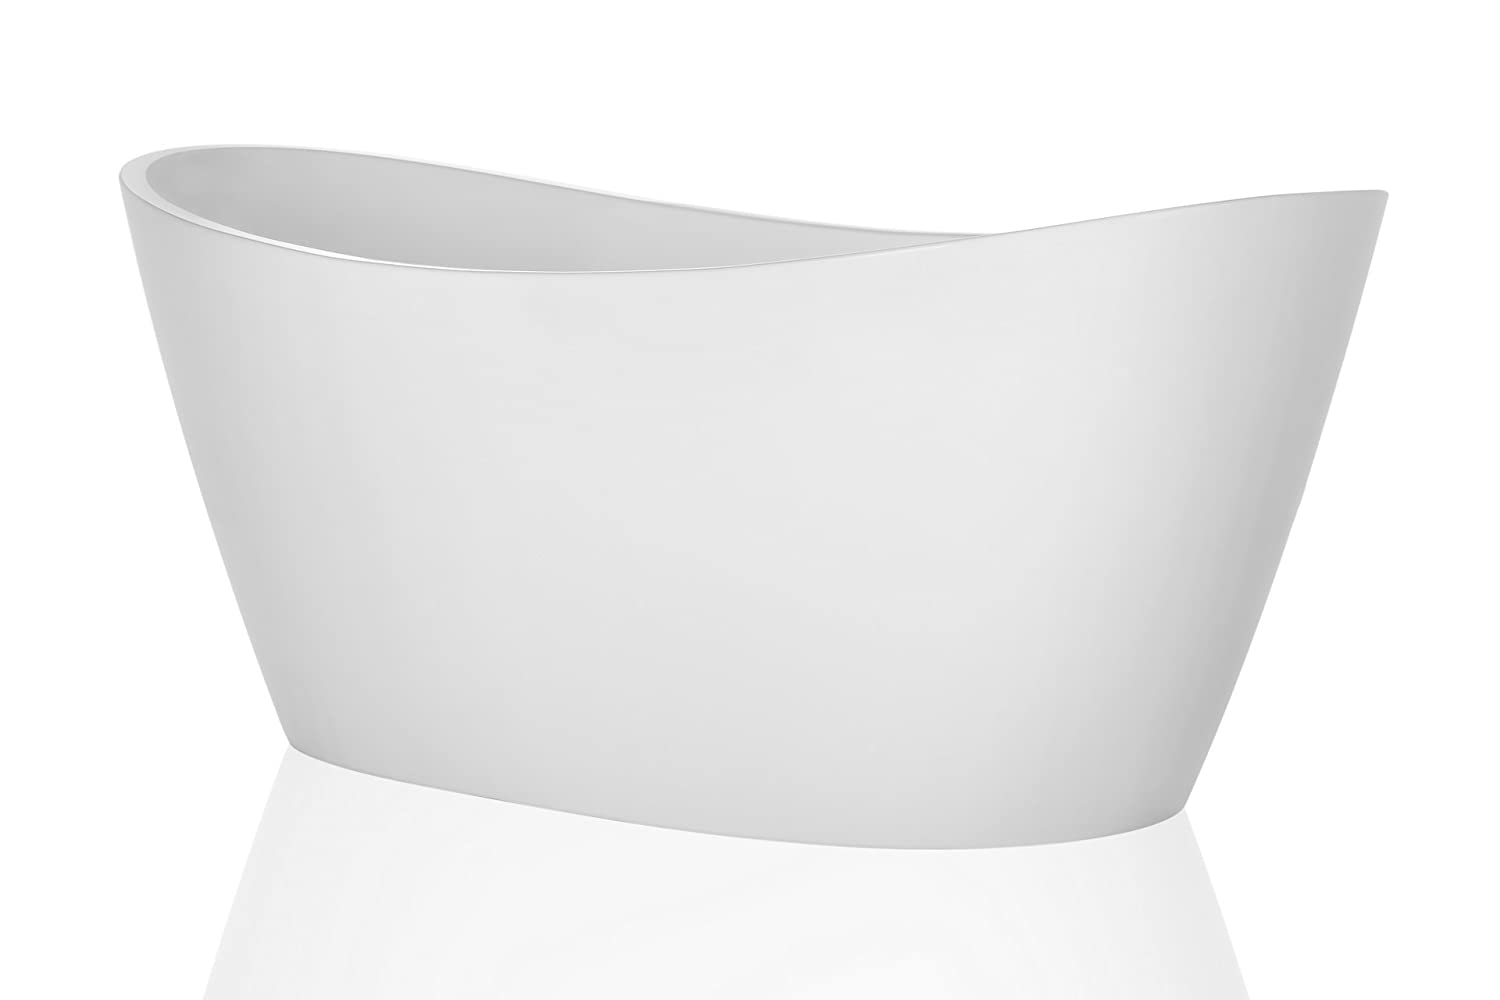 3.Empava Freestanding Acrylic Soaking Spa Tub